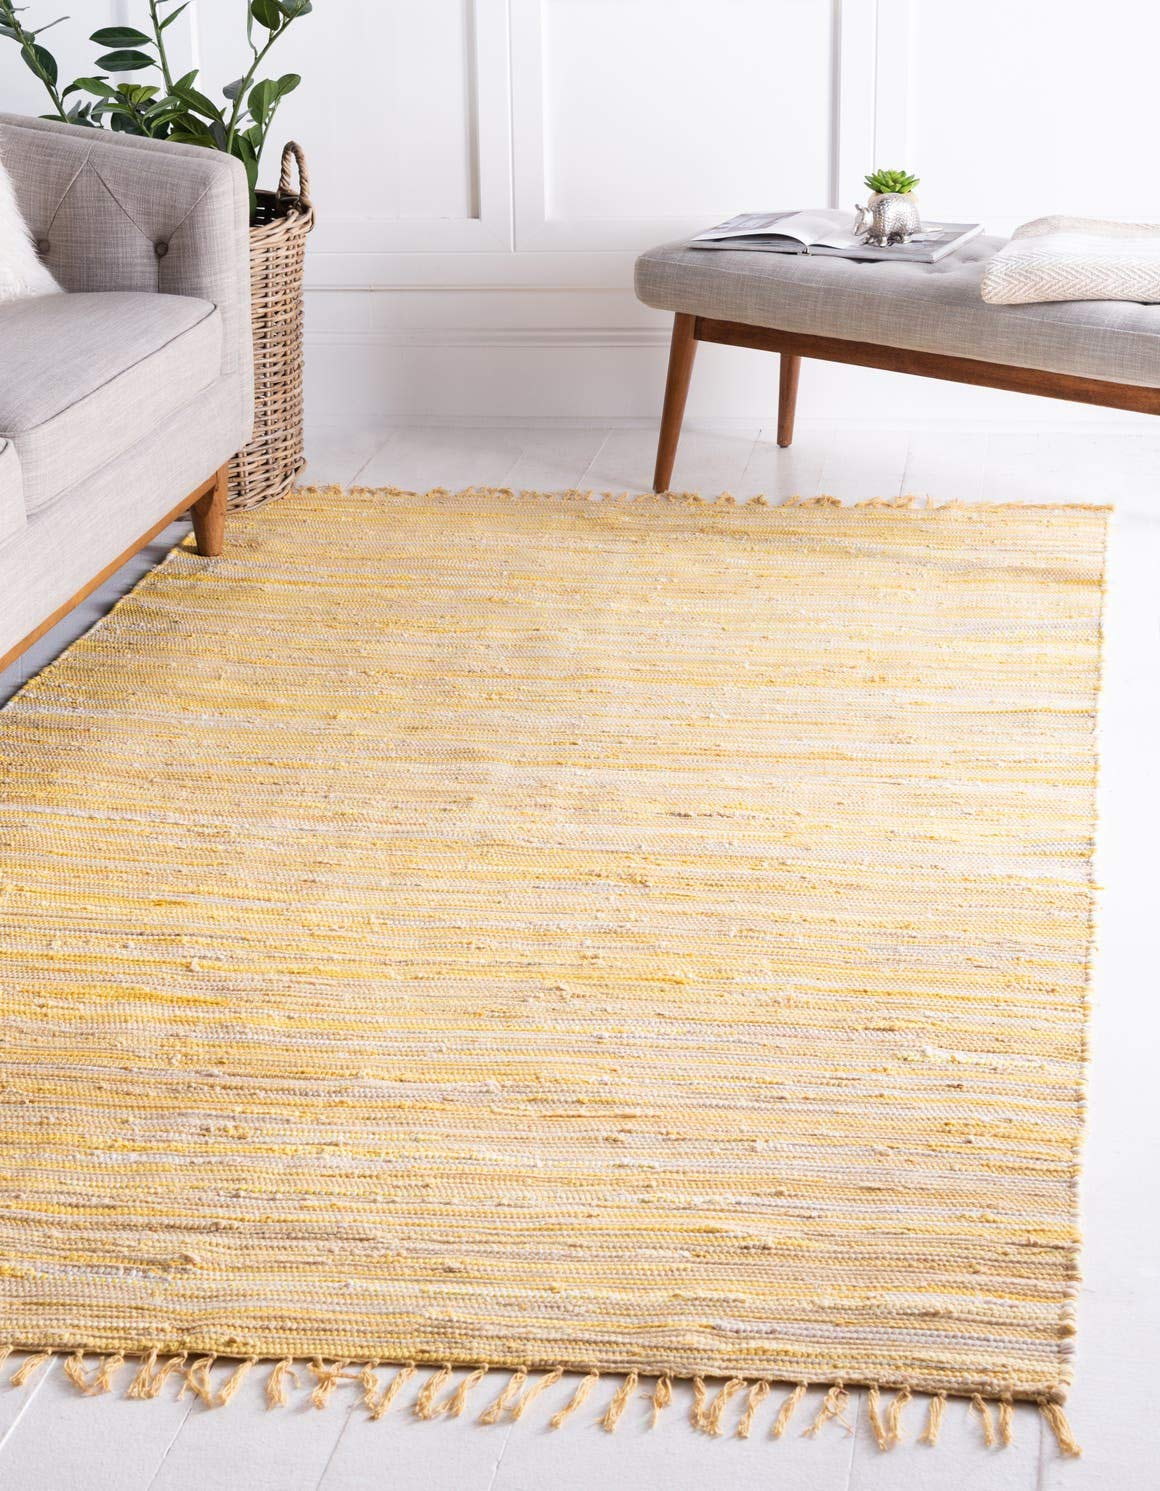 Unique Loom Chindi Cotton Collection Hand Woven Natural Fibers Yellow Area Rug 5 0 x 8 0